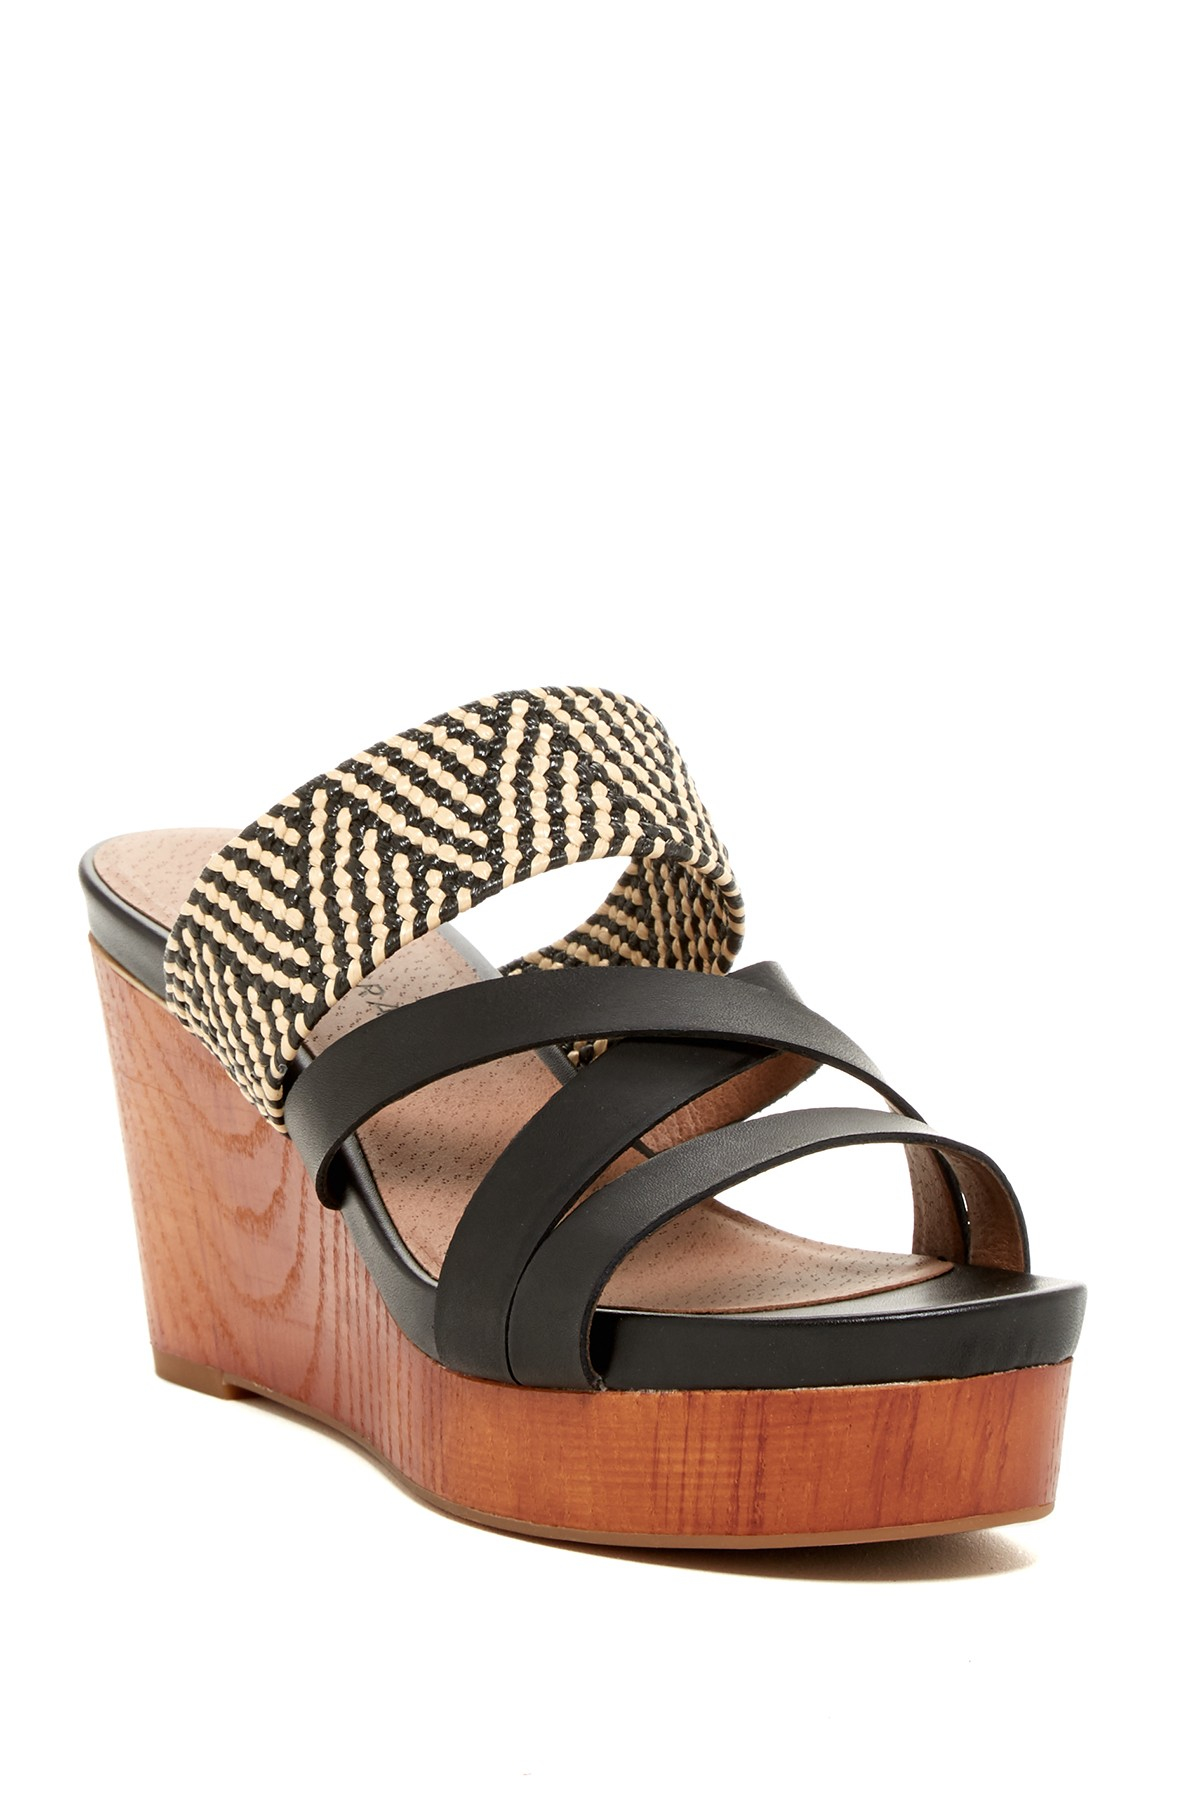 lucky brand nyloh wedge sandal in multicolor blk ntrl blk